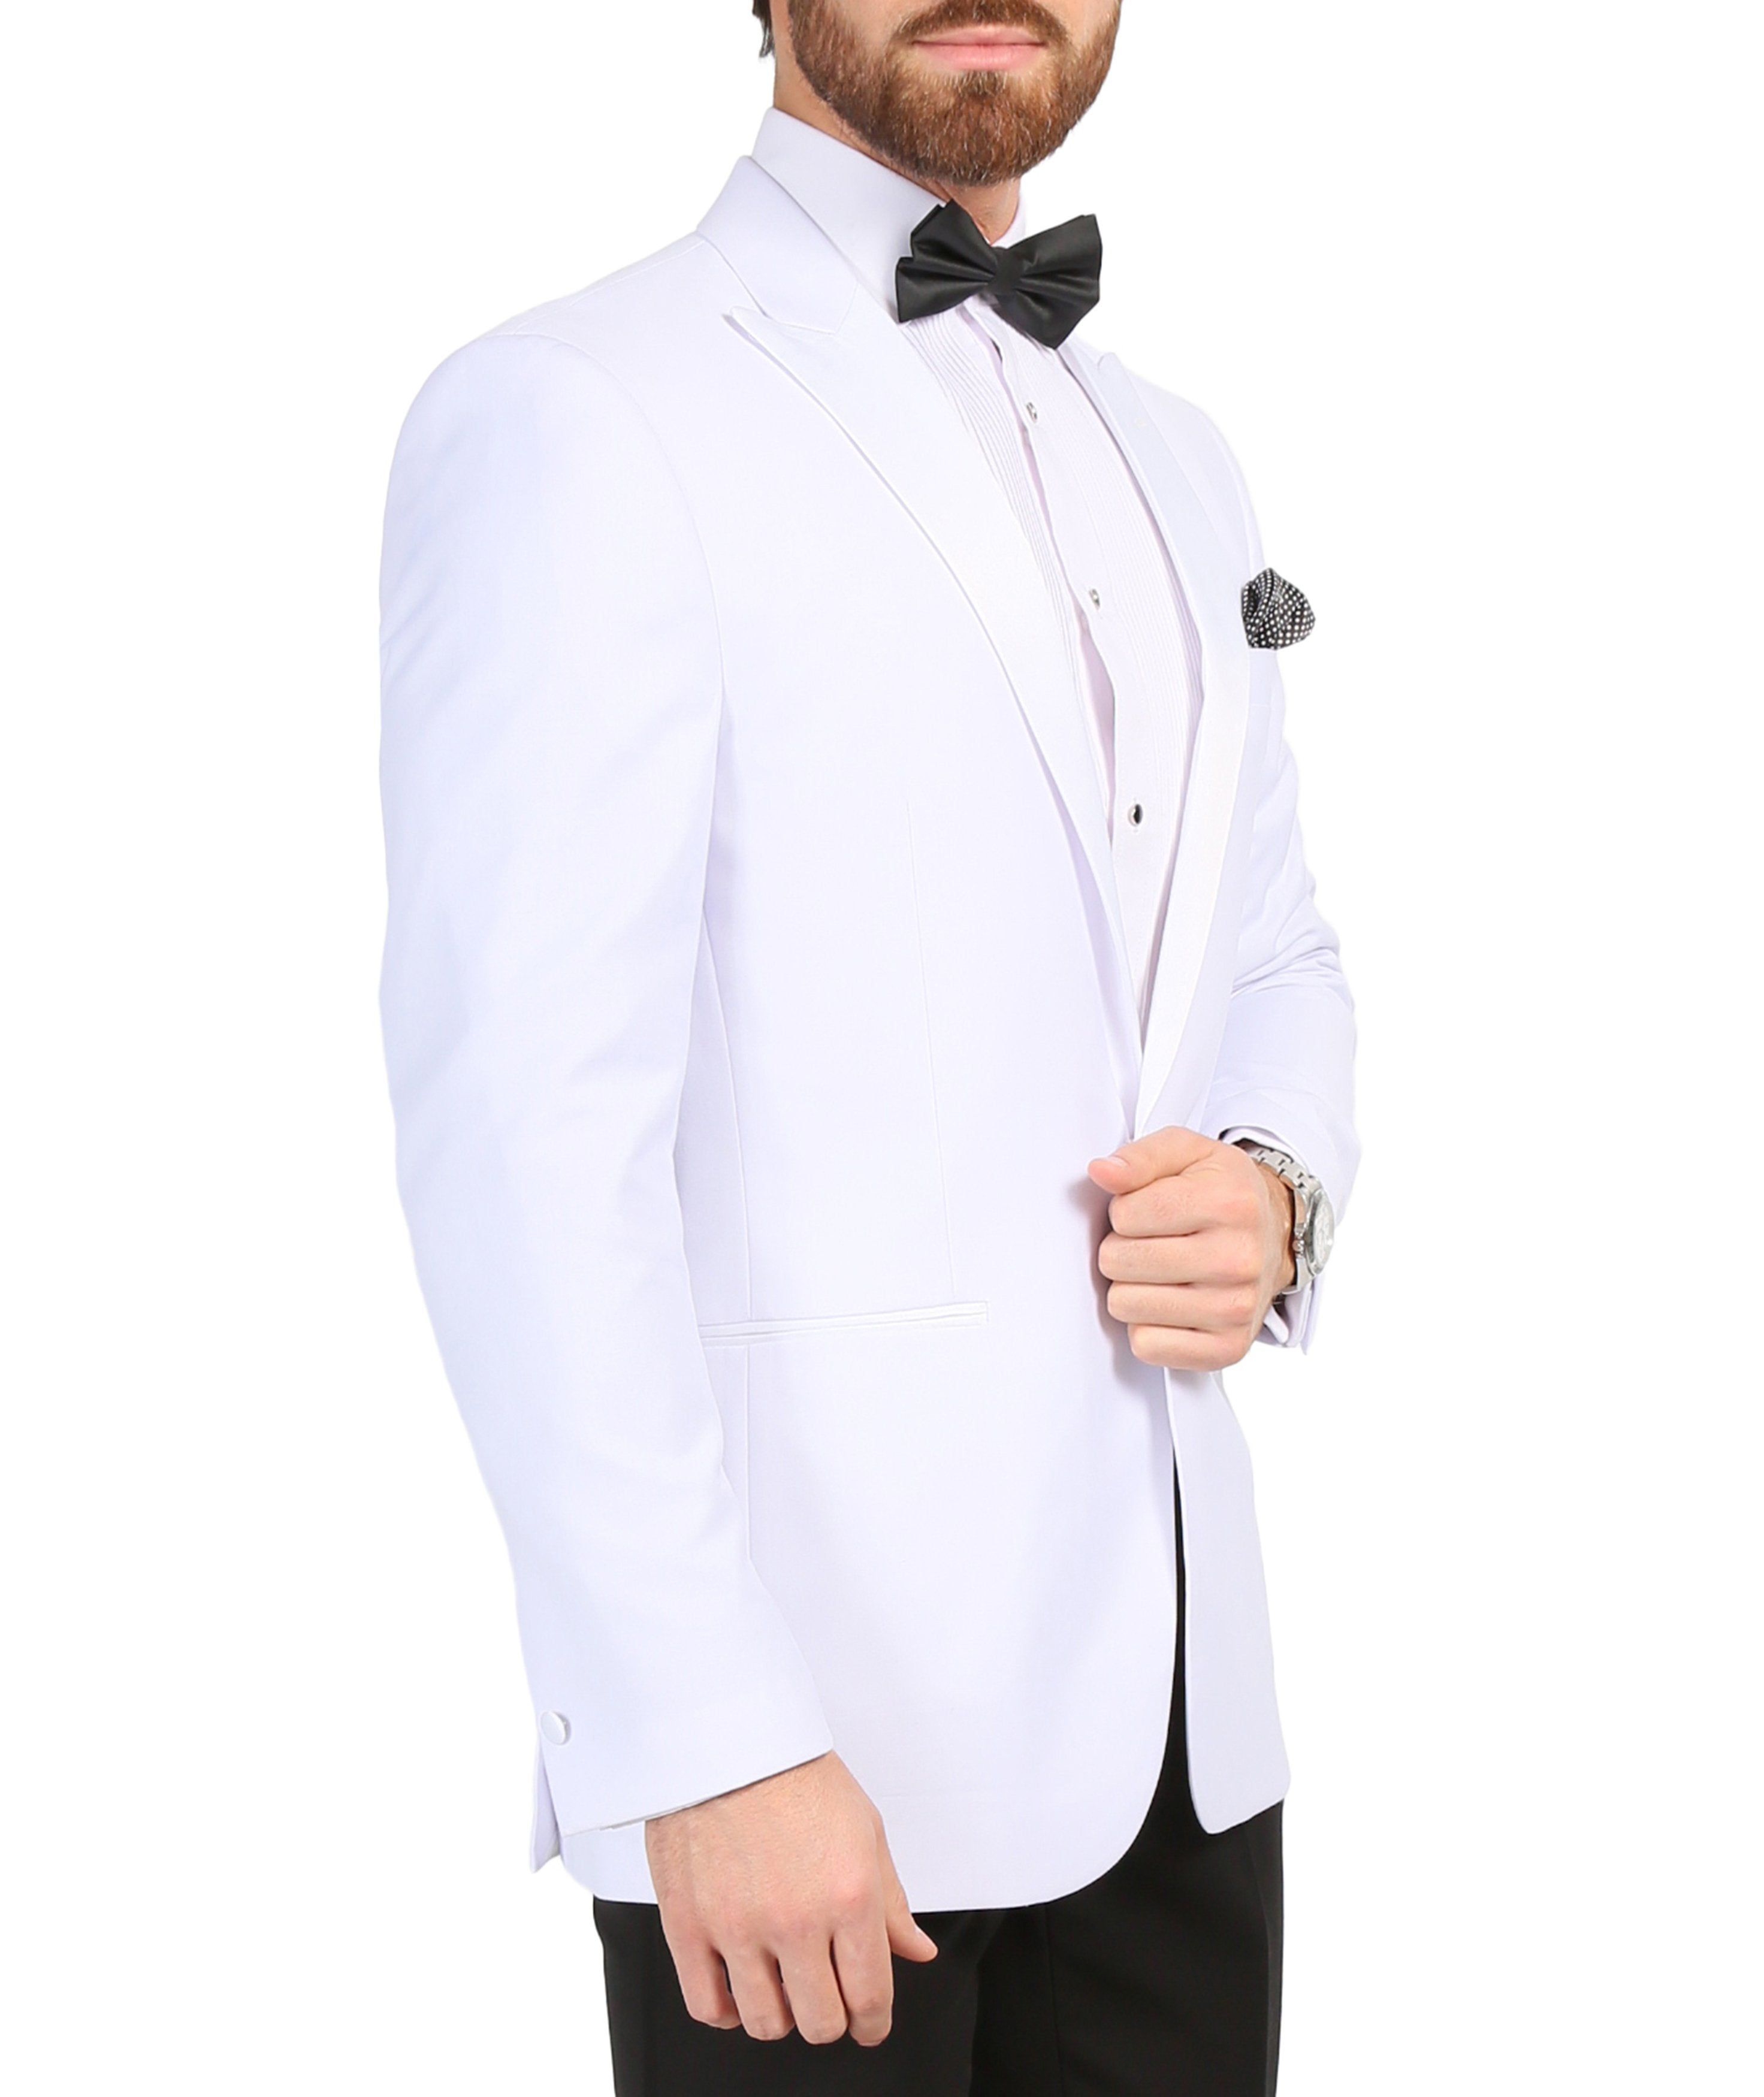 Ferrecci Men's Aura White Slim Fit Peak Lapel Tuxedo Dinner Jacket - Giorgio's Menswear